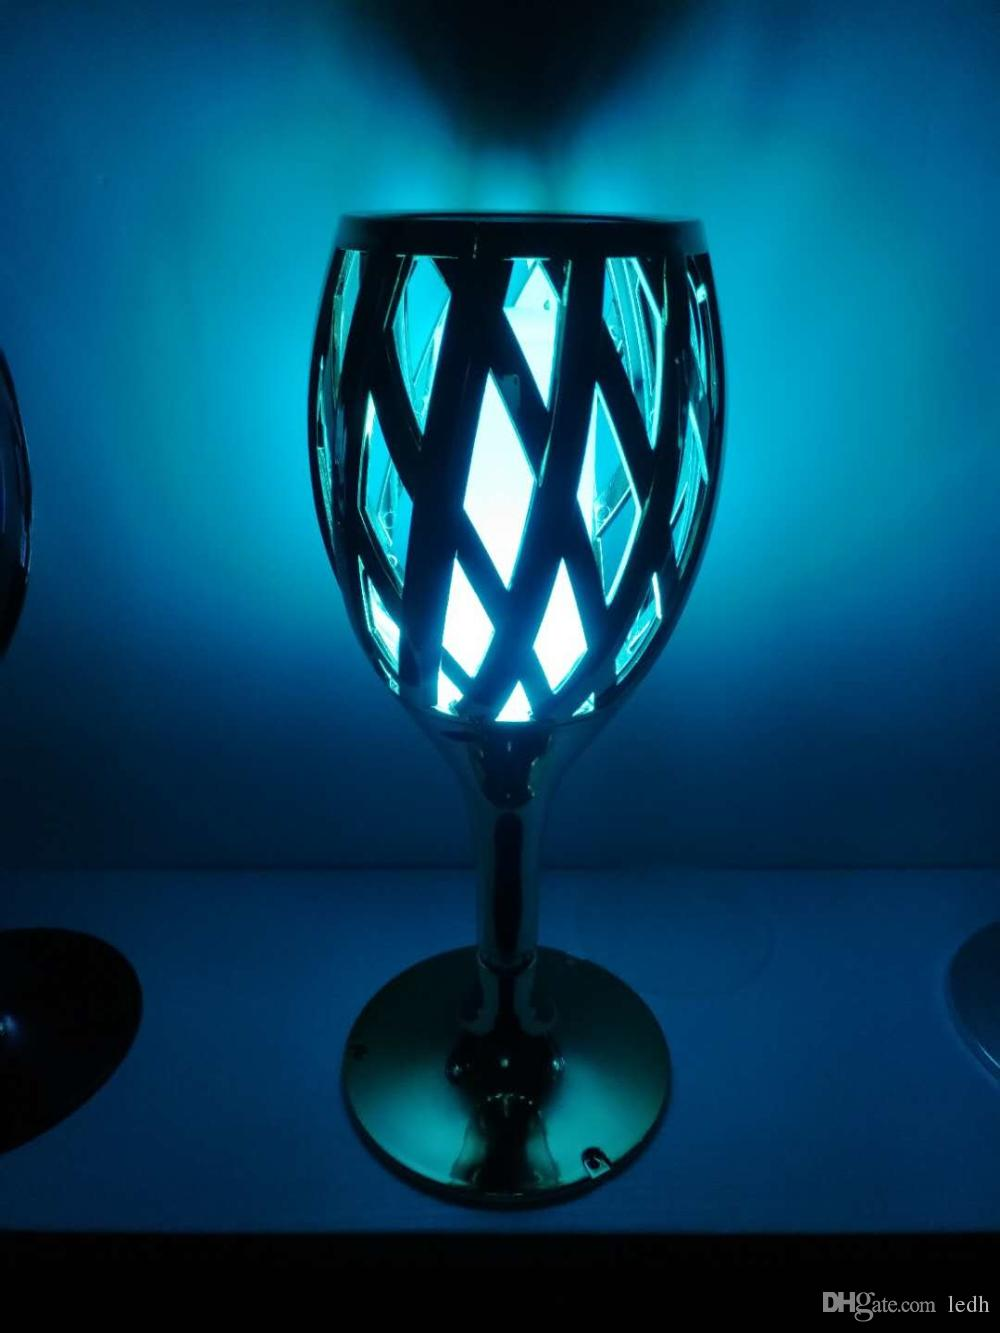 Indoor/Outdoor Battery Powered Light Motion Activated Portable Security Desk Light Mass Cup Design restaurant/bar/party decorative mood